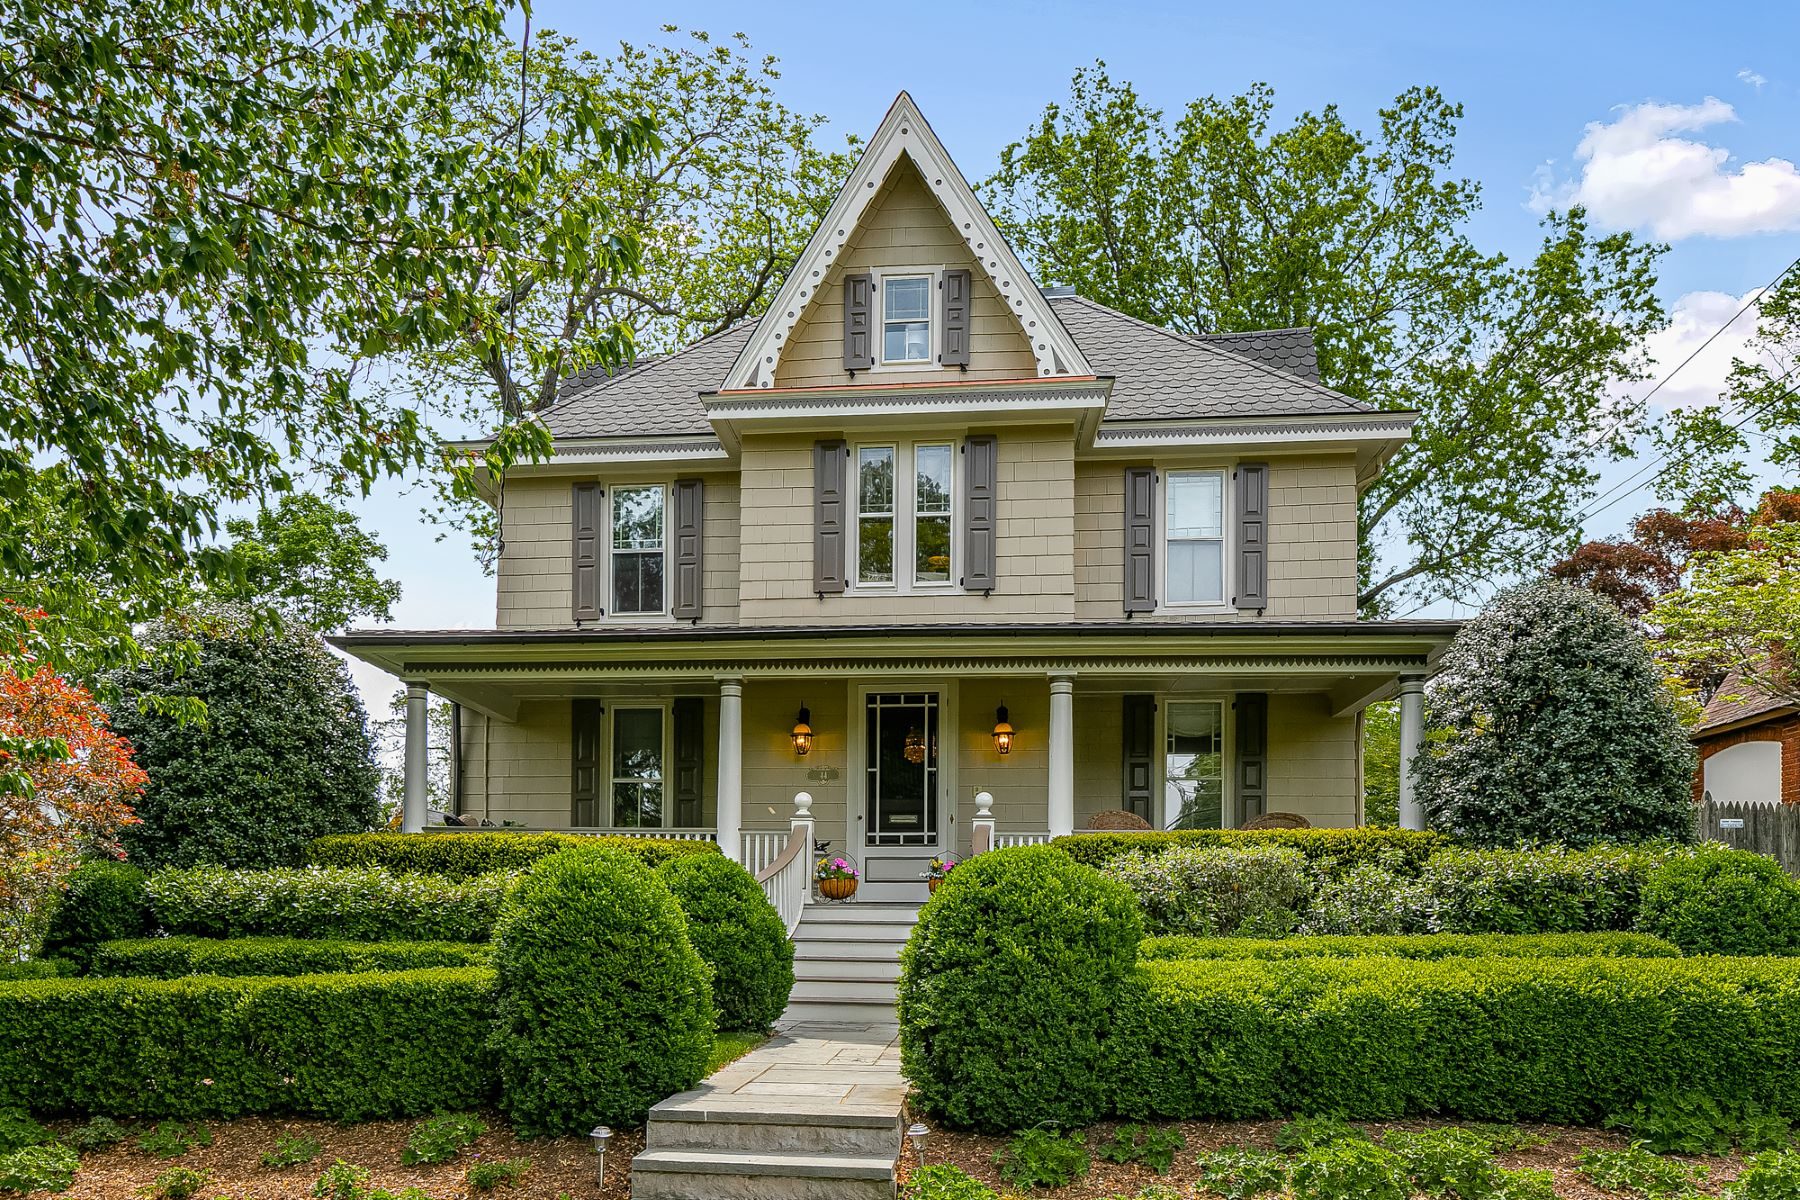 Single Family Homes for Sale at Beautifully Restored Victorian 44 Green Avenue Madison, New Jersey 07940 United States